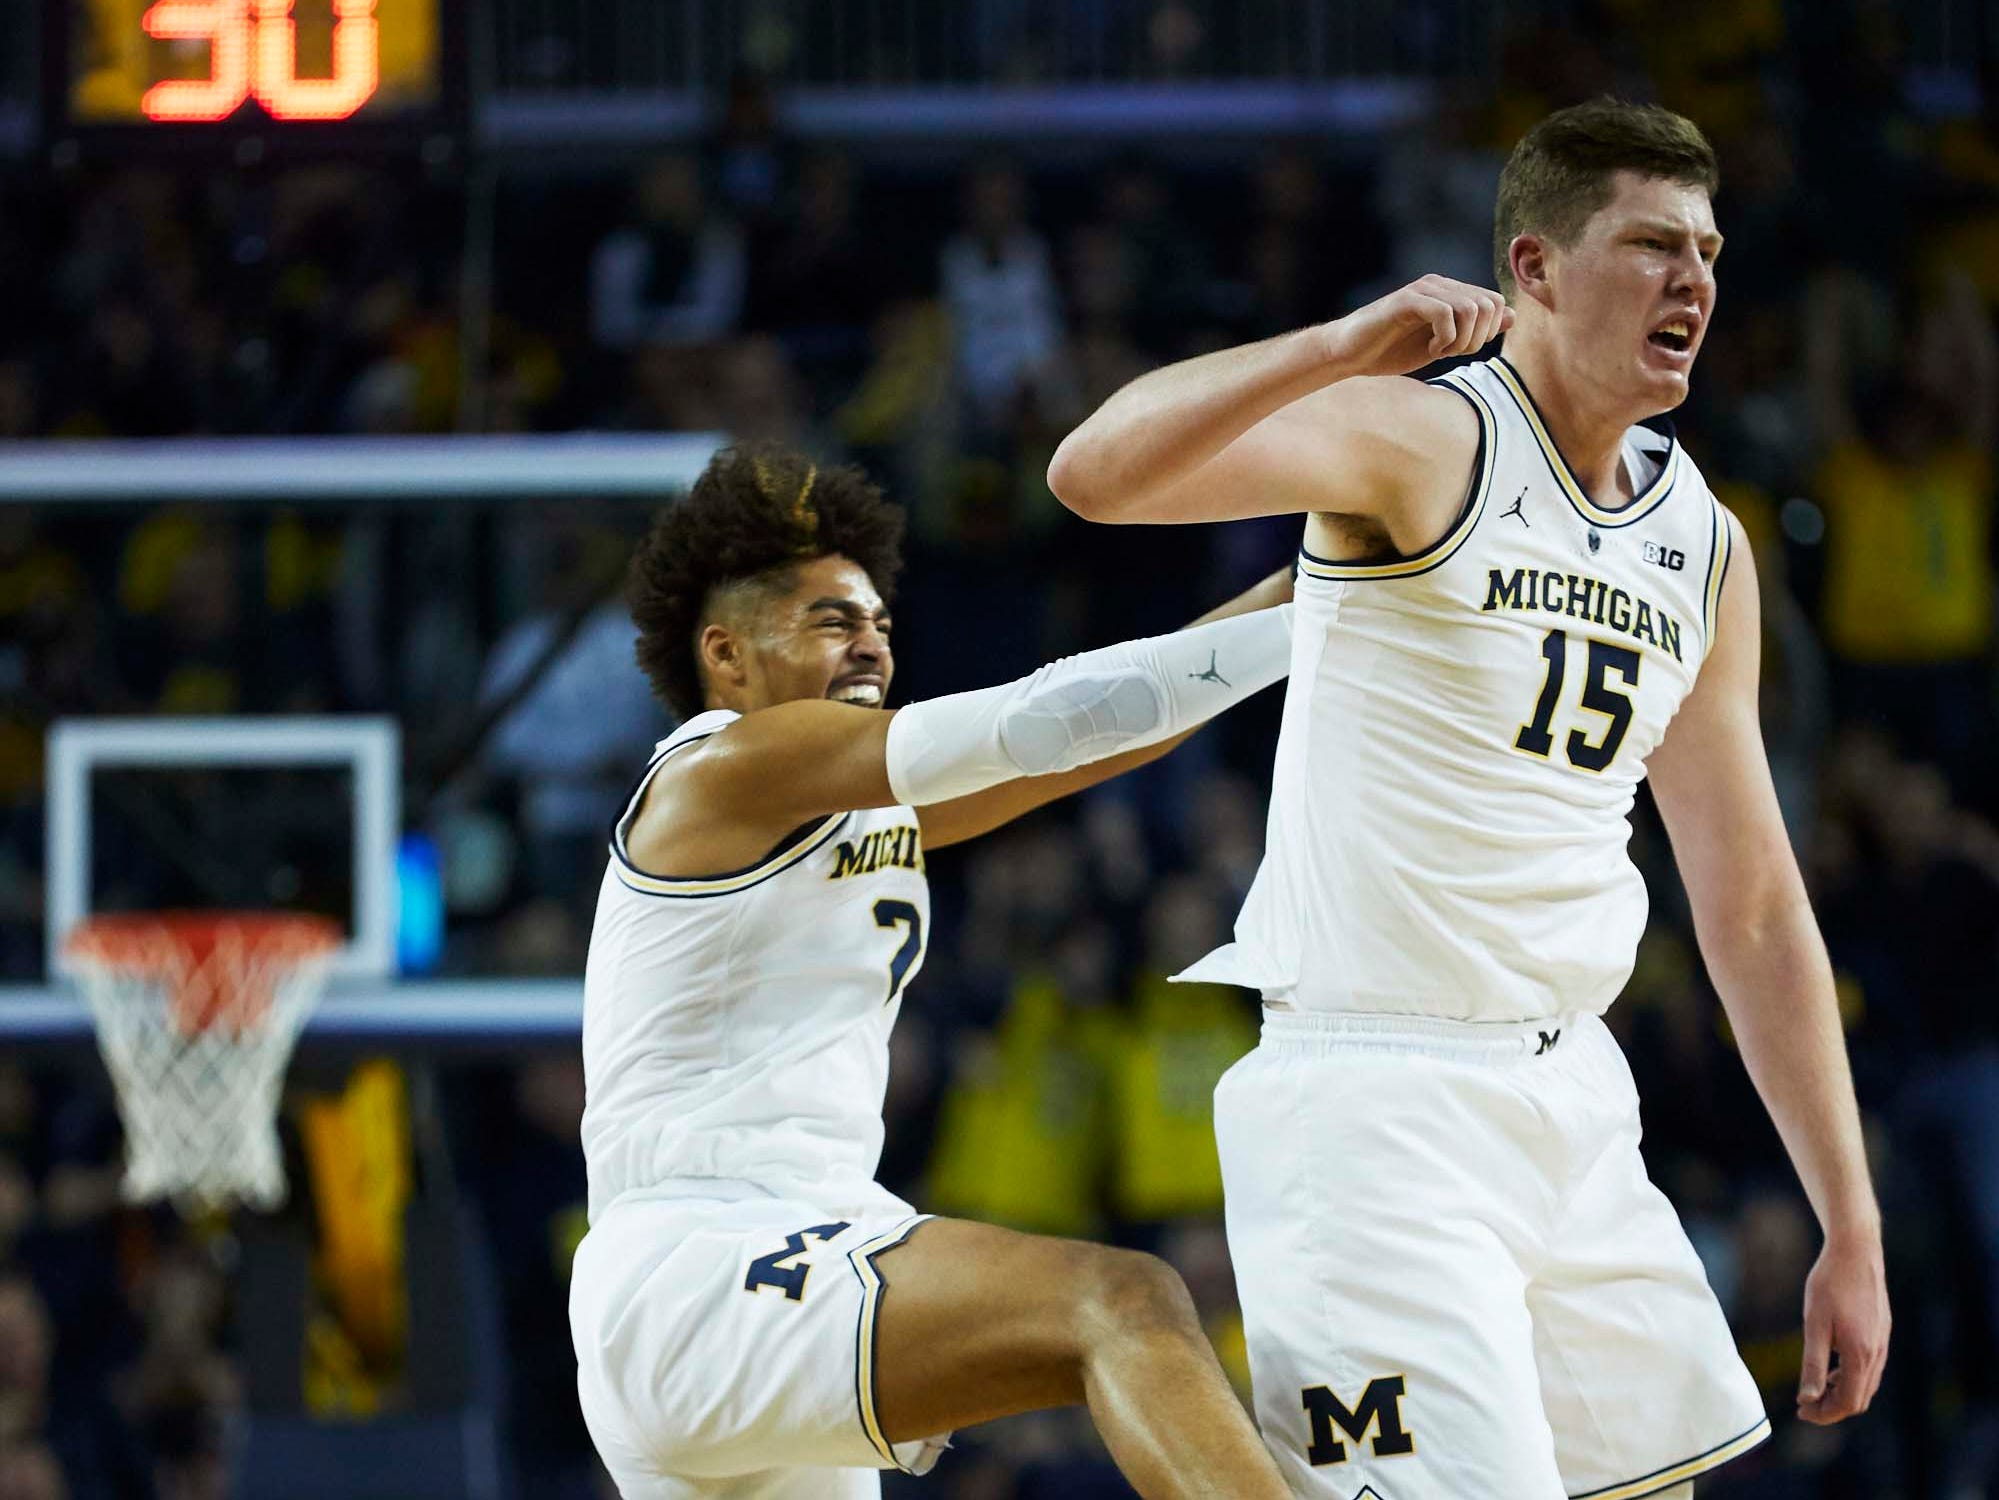 Dec 1, 2018; Ann Arbor, MI, USA; Michigan Wolverines center Jon Teske (15) and guard Jordan Poole (2) celebrate during the first half against the Purdue Boilermakers at Crisler Center. Mandatory Credit: Rick Osentoski-USA TODAY Sports